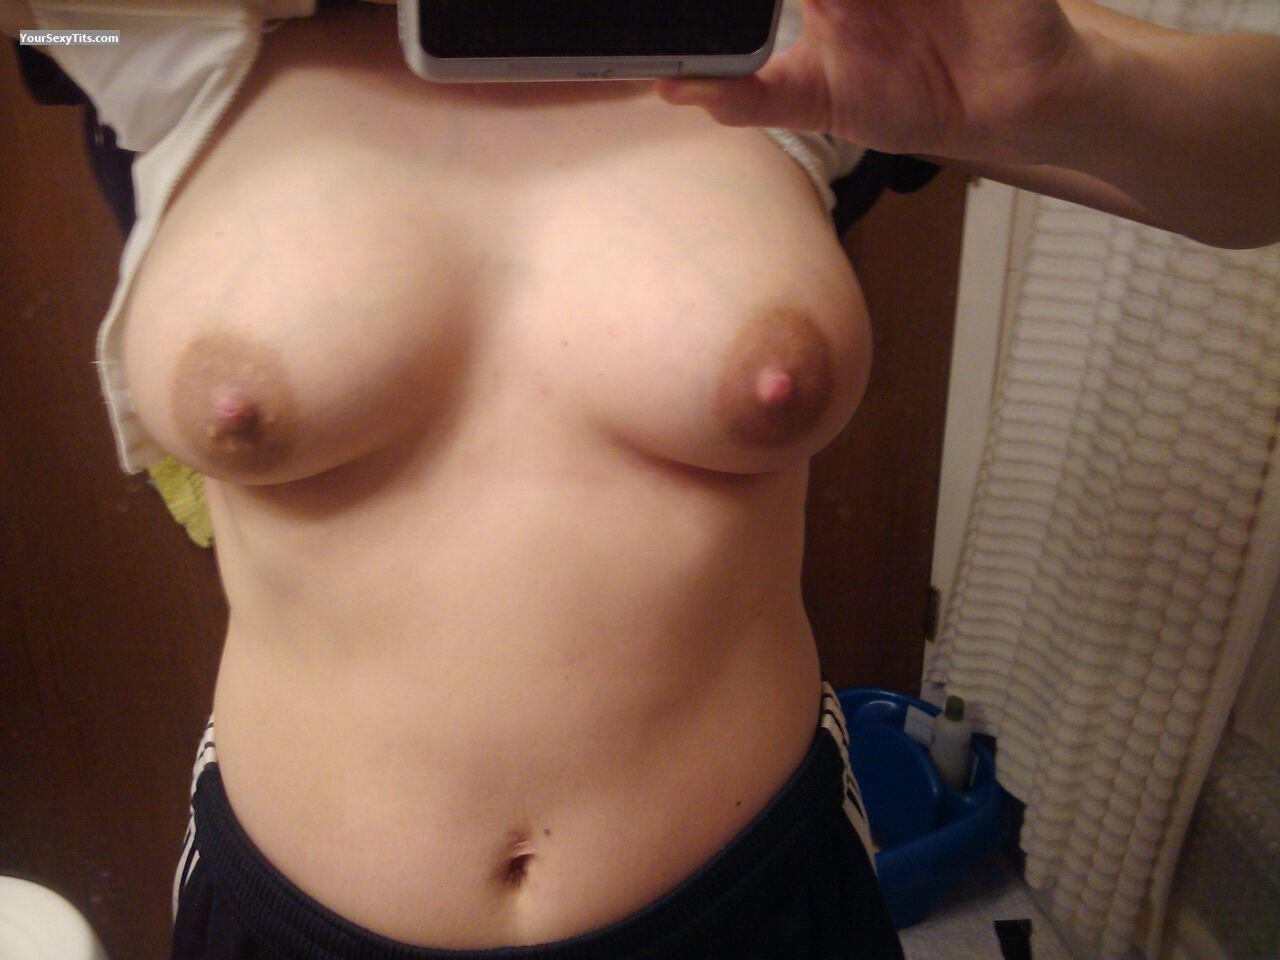 Tit Flash: My Medium Tits (Selfie) - Rn from United States